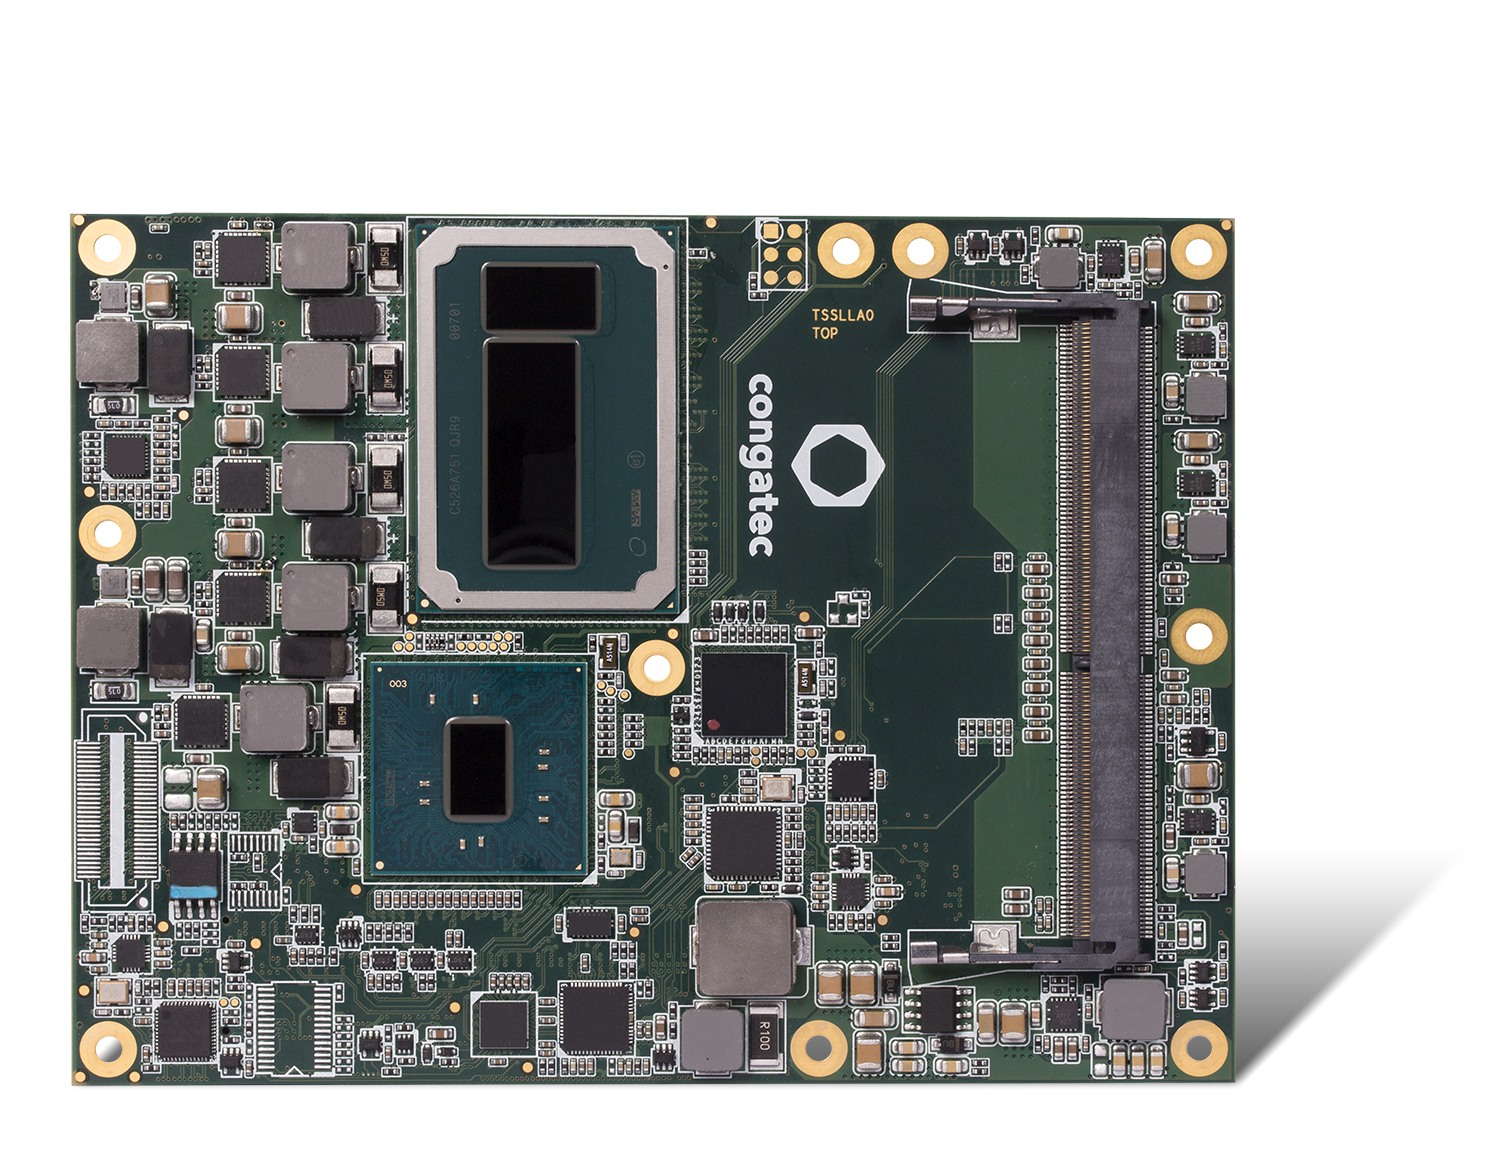 congatec COM Express Module with Intel Xeon processor and Intel Iris Pro graphics